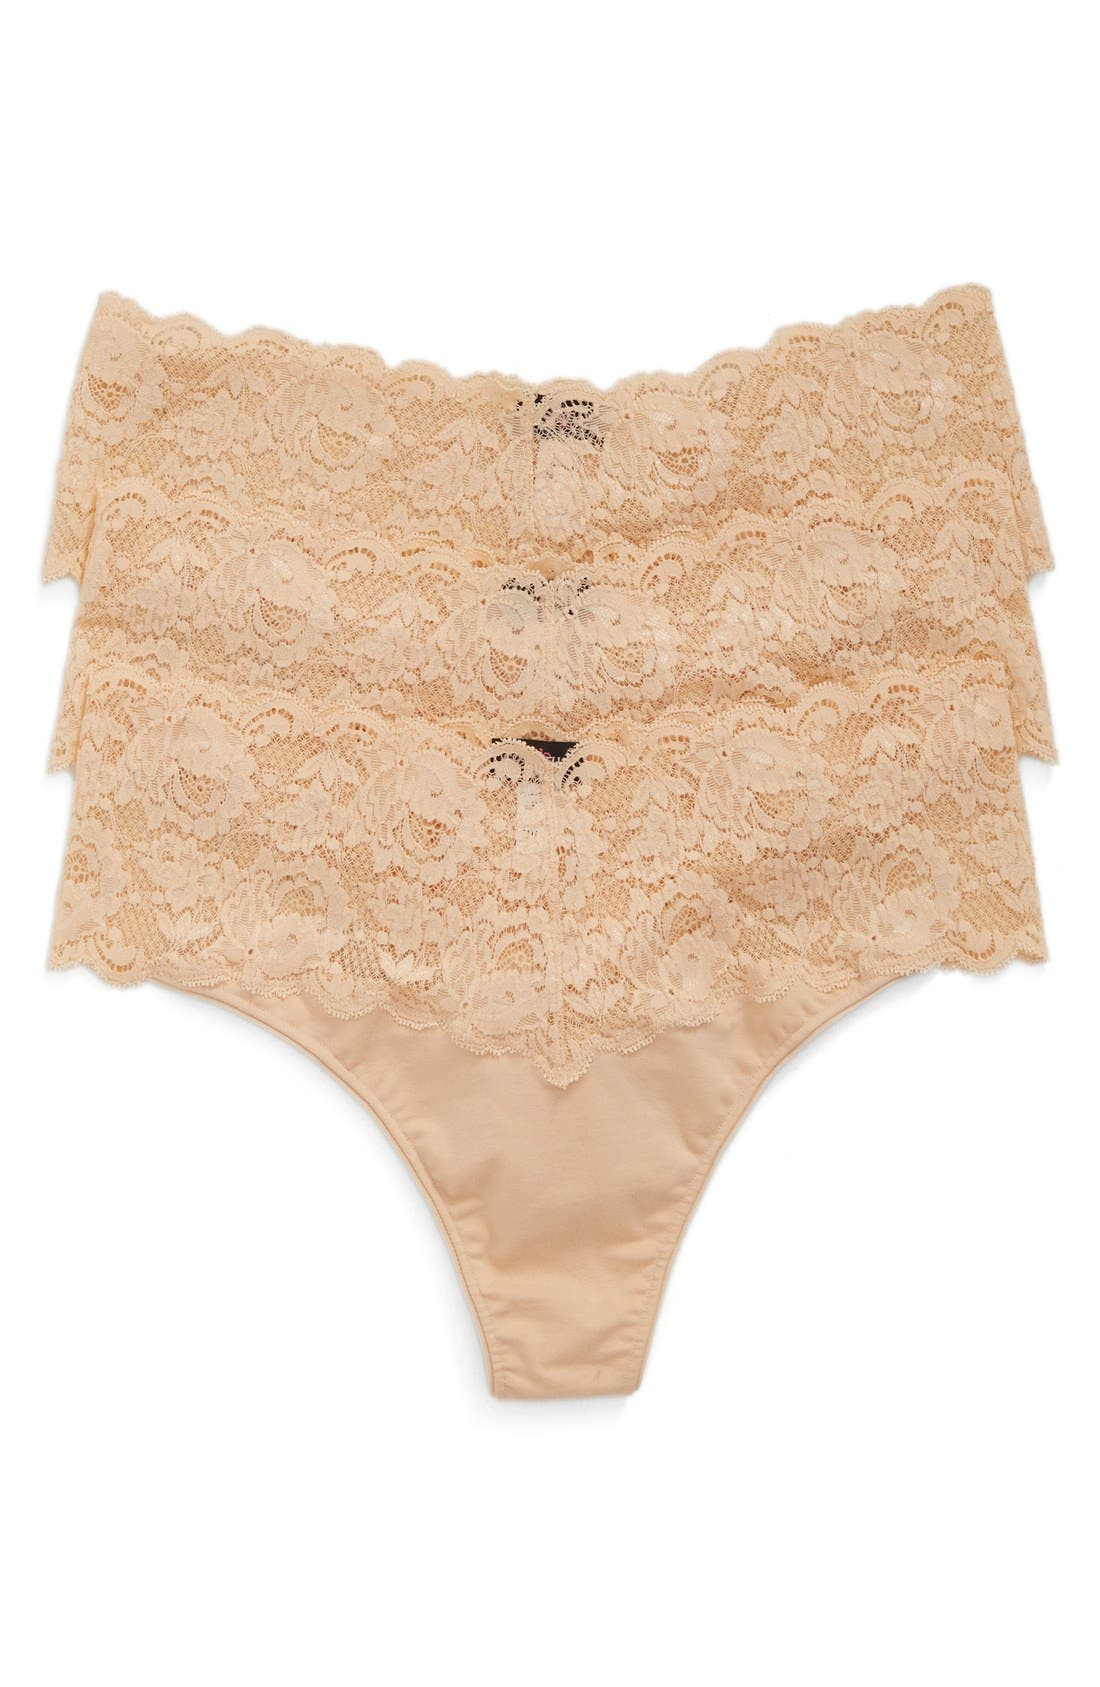 Main Image - Cosabella 'Lovelie' Lace Trim Thong (Plus Size) (3-Pack) (Online Only)